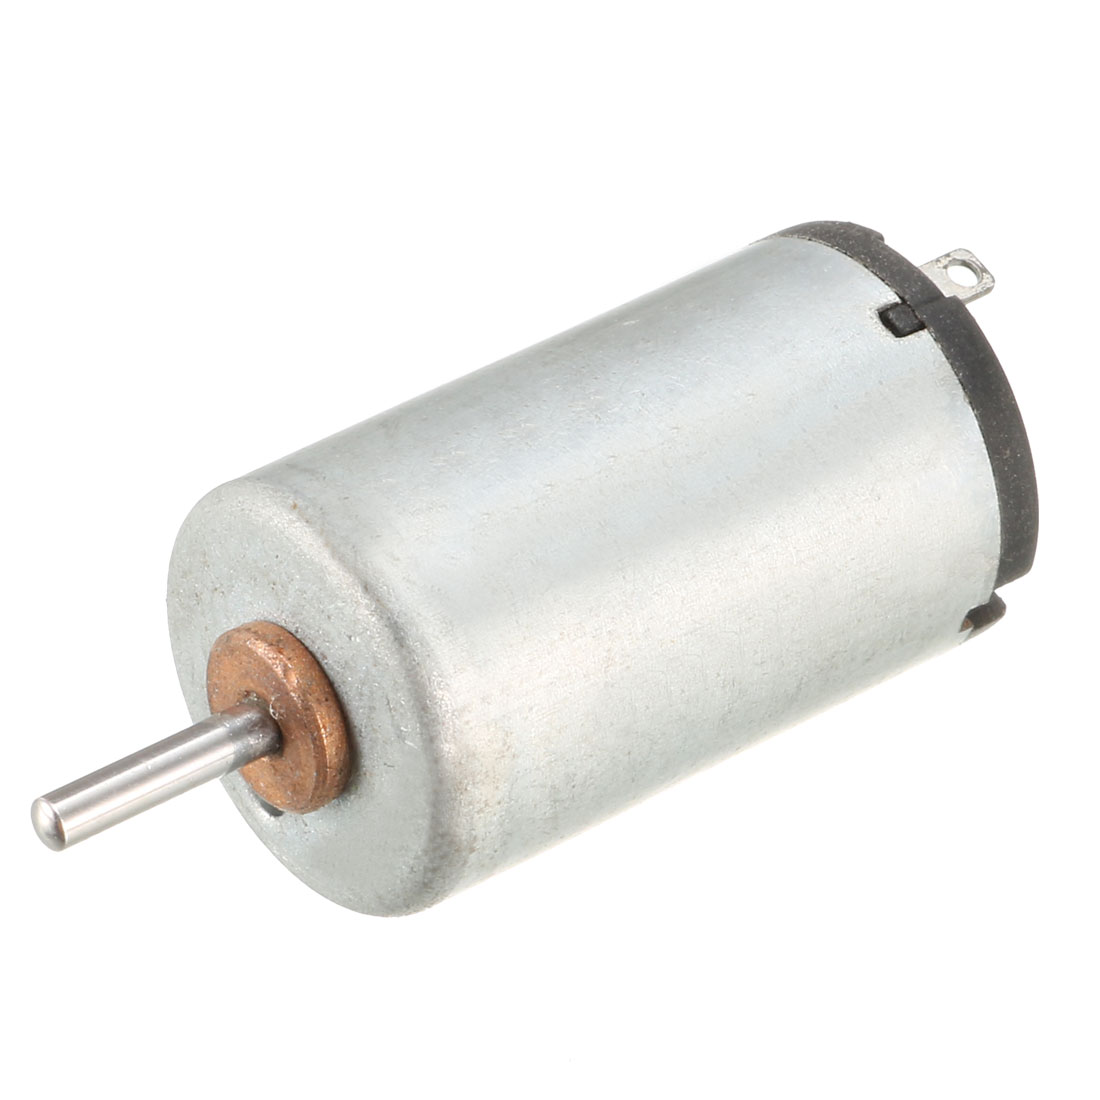 DC 3-6V 20000RPM Micro Mini Motor 12x20mm for RC Model Toys DIY